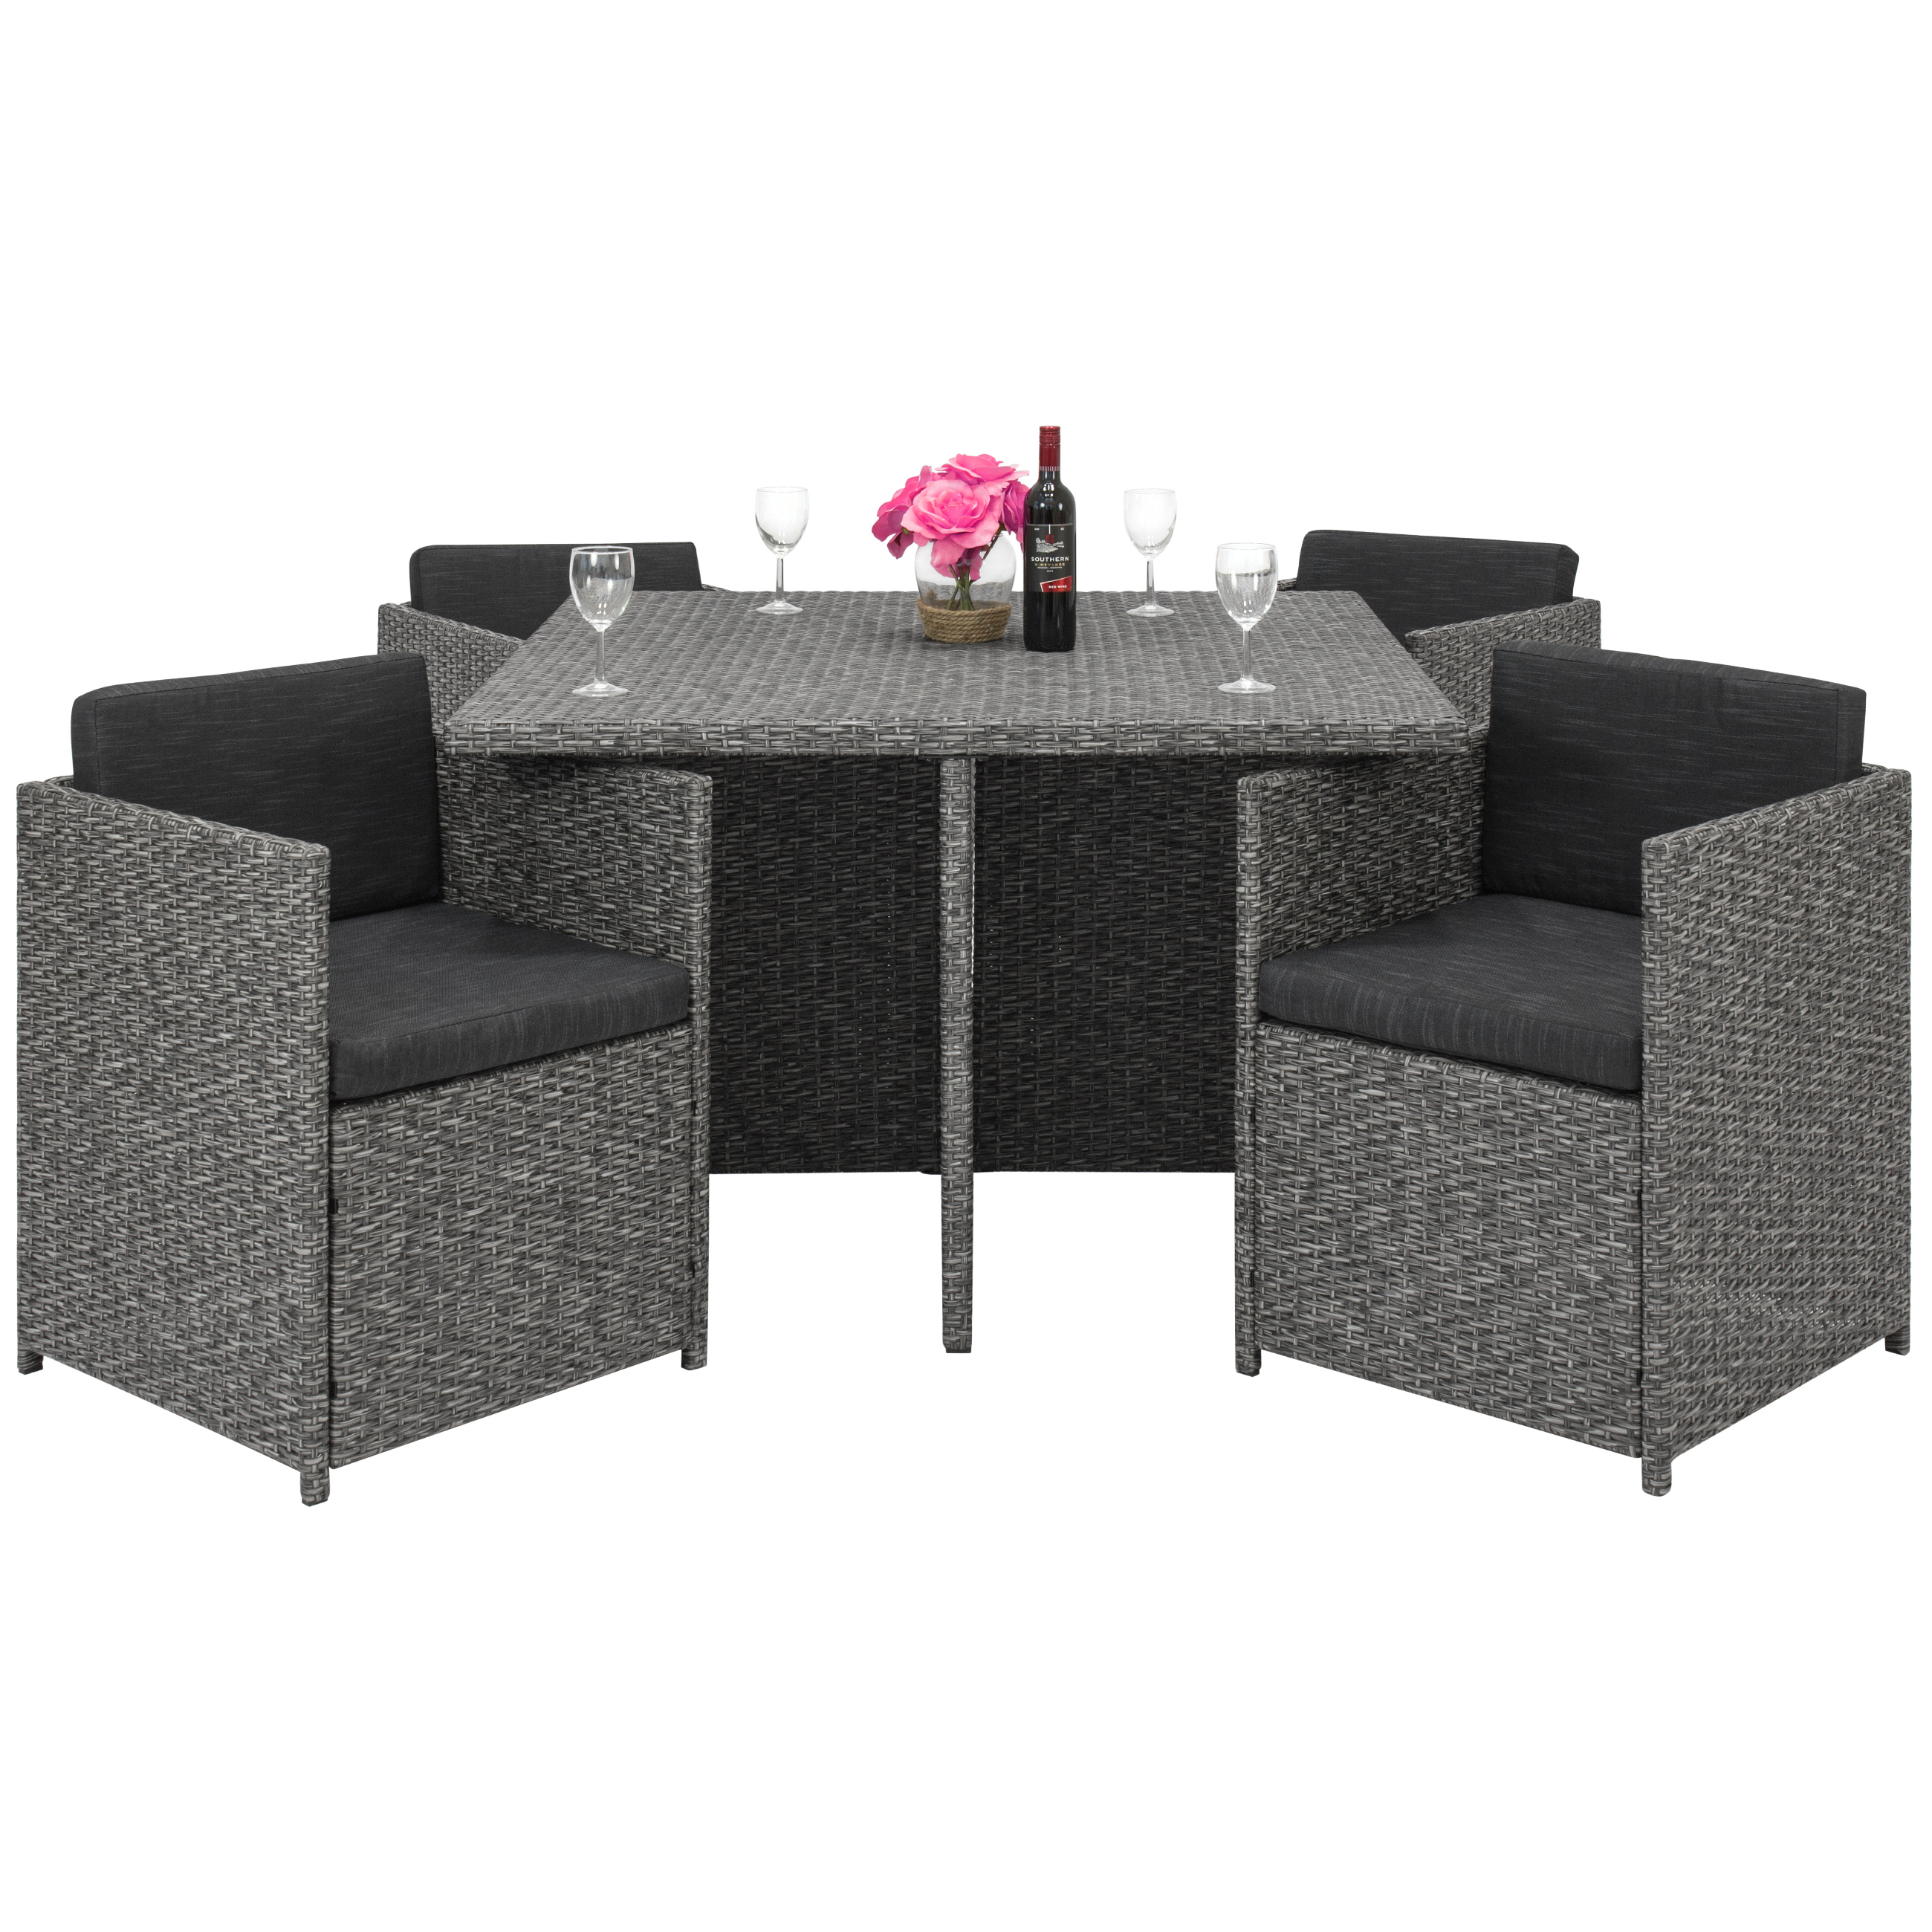 Best Choice Products Space Saving Outdoor Patio Furniture 5-Piece Wicker Dining Room Set- Dark Gray by Best Choice Products